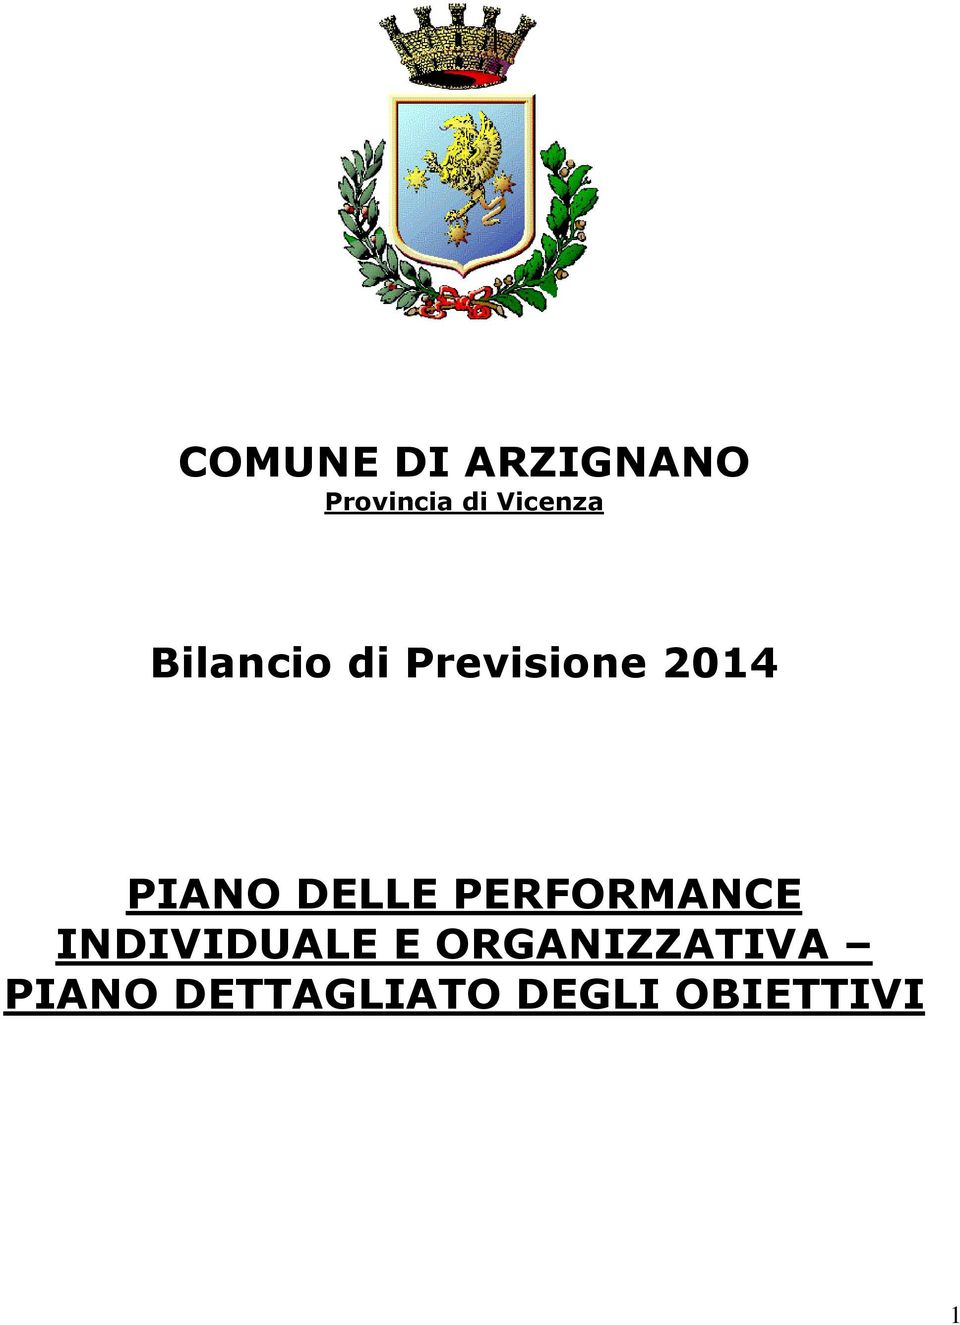 PIANO DELLE PERFORMANCE INDIVIDUALE E